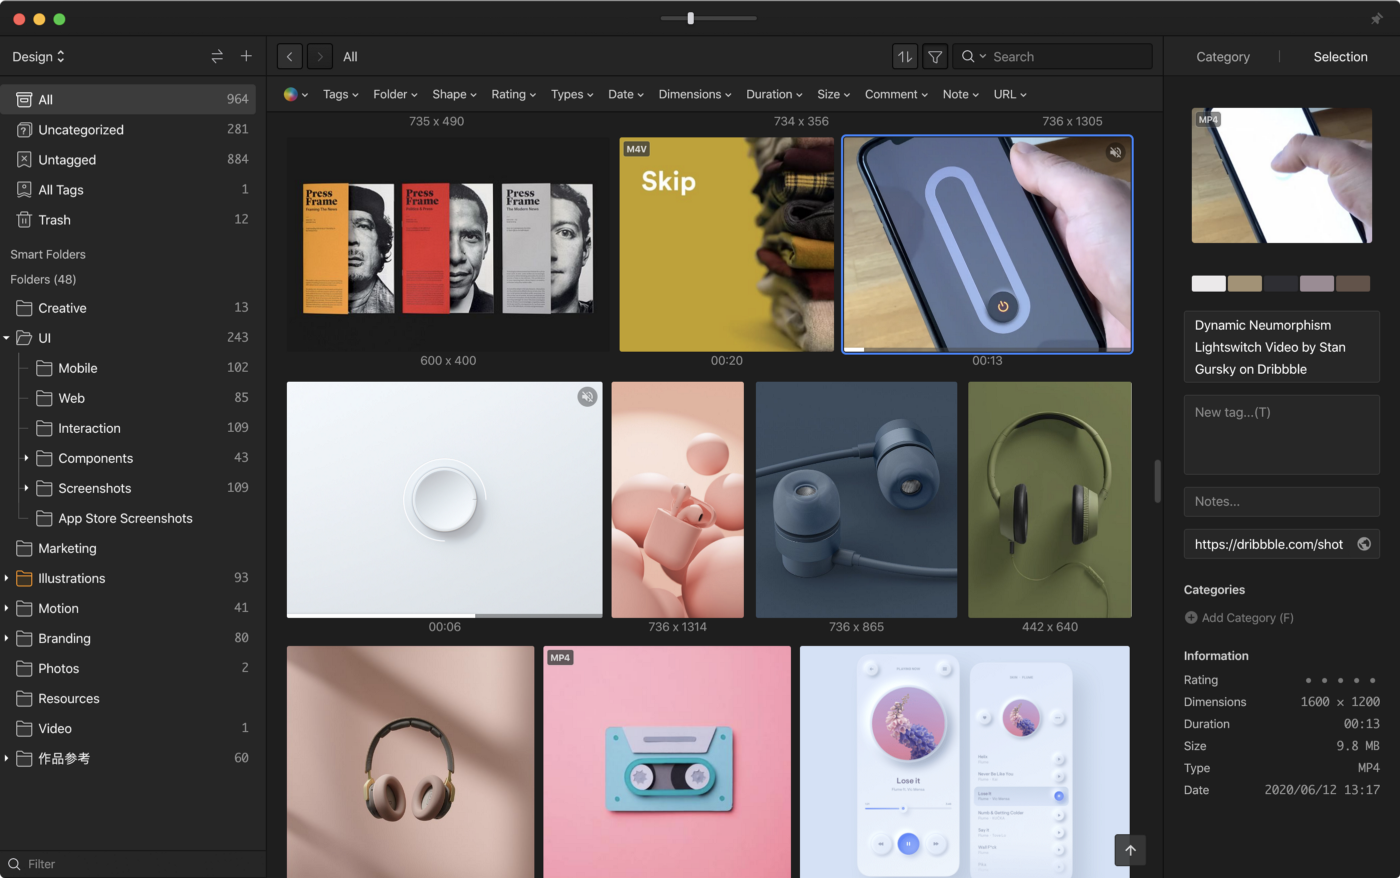 Curation of colorful graphic designs including earphones and phone interface